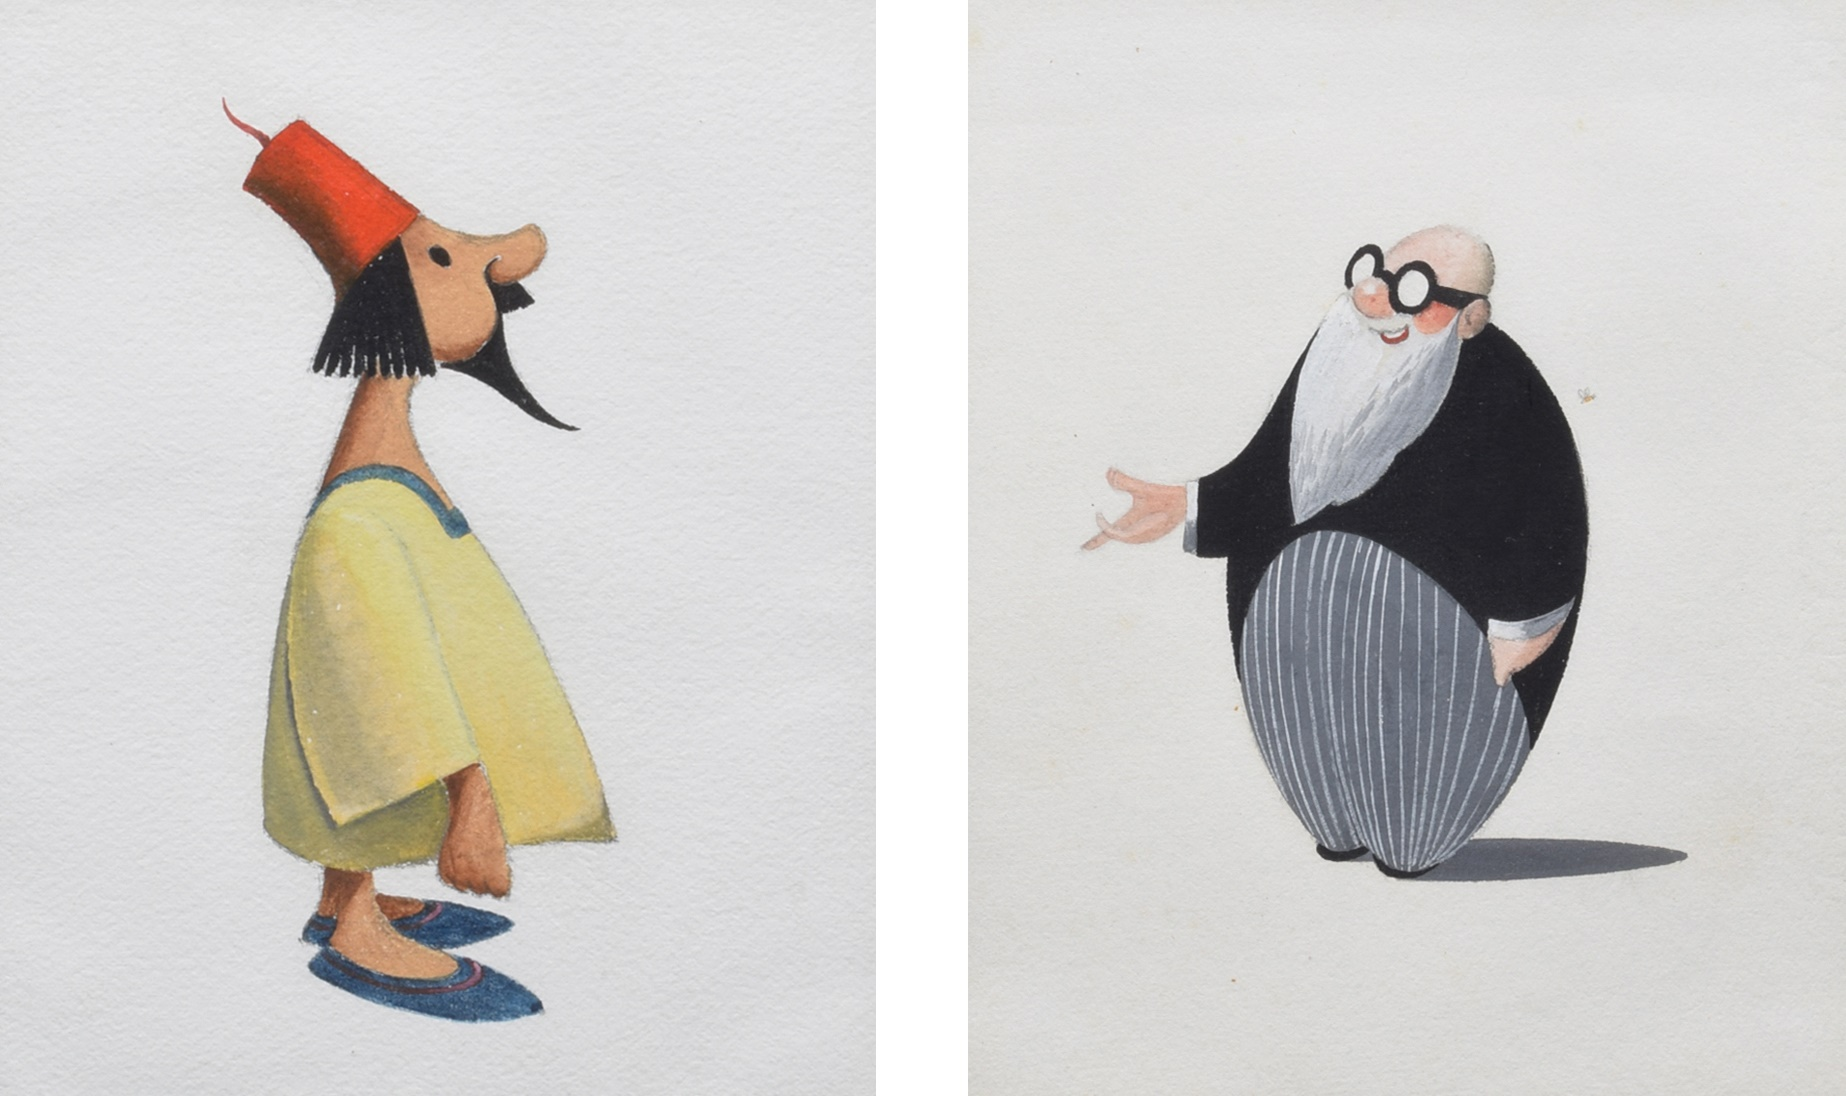 Lot 16 - Francis Coudrill (1914-1989), Figure studies, unsigned, gouache, 16 x 12.5cm, 6.25 x 5in (4). We are